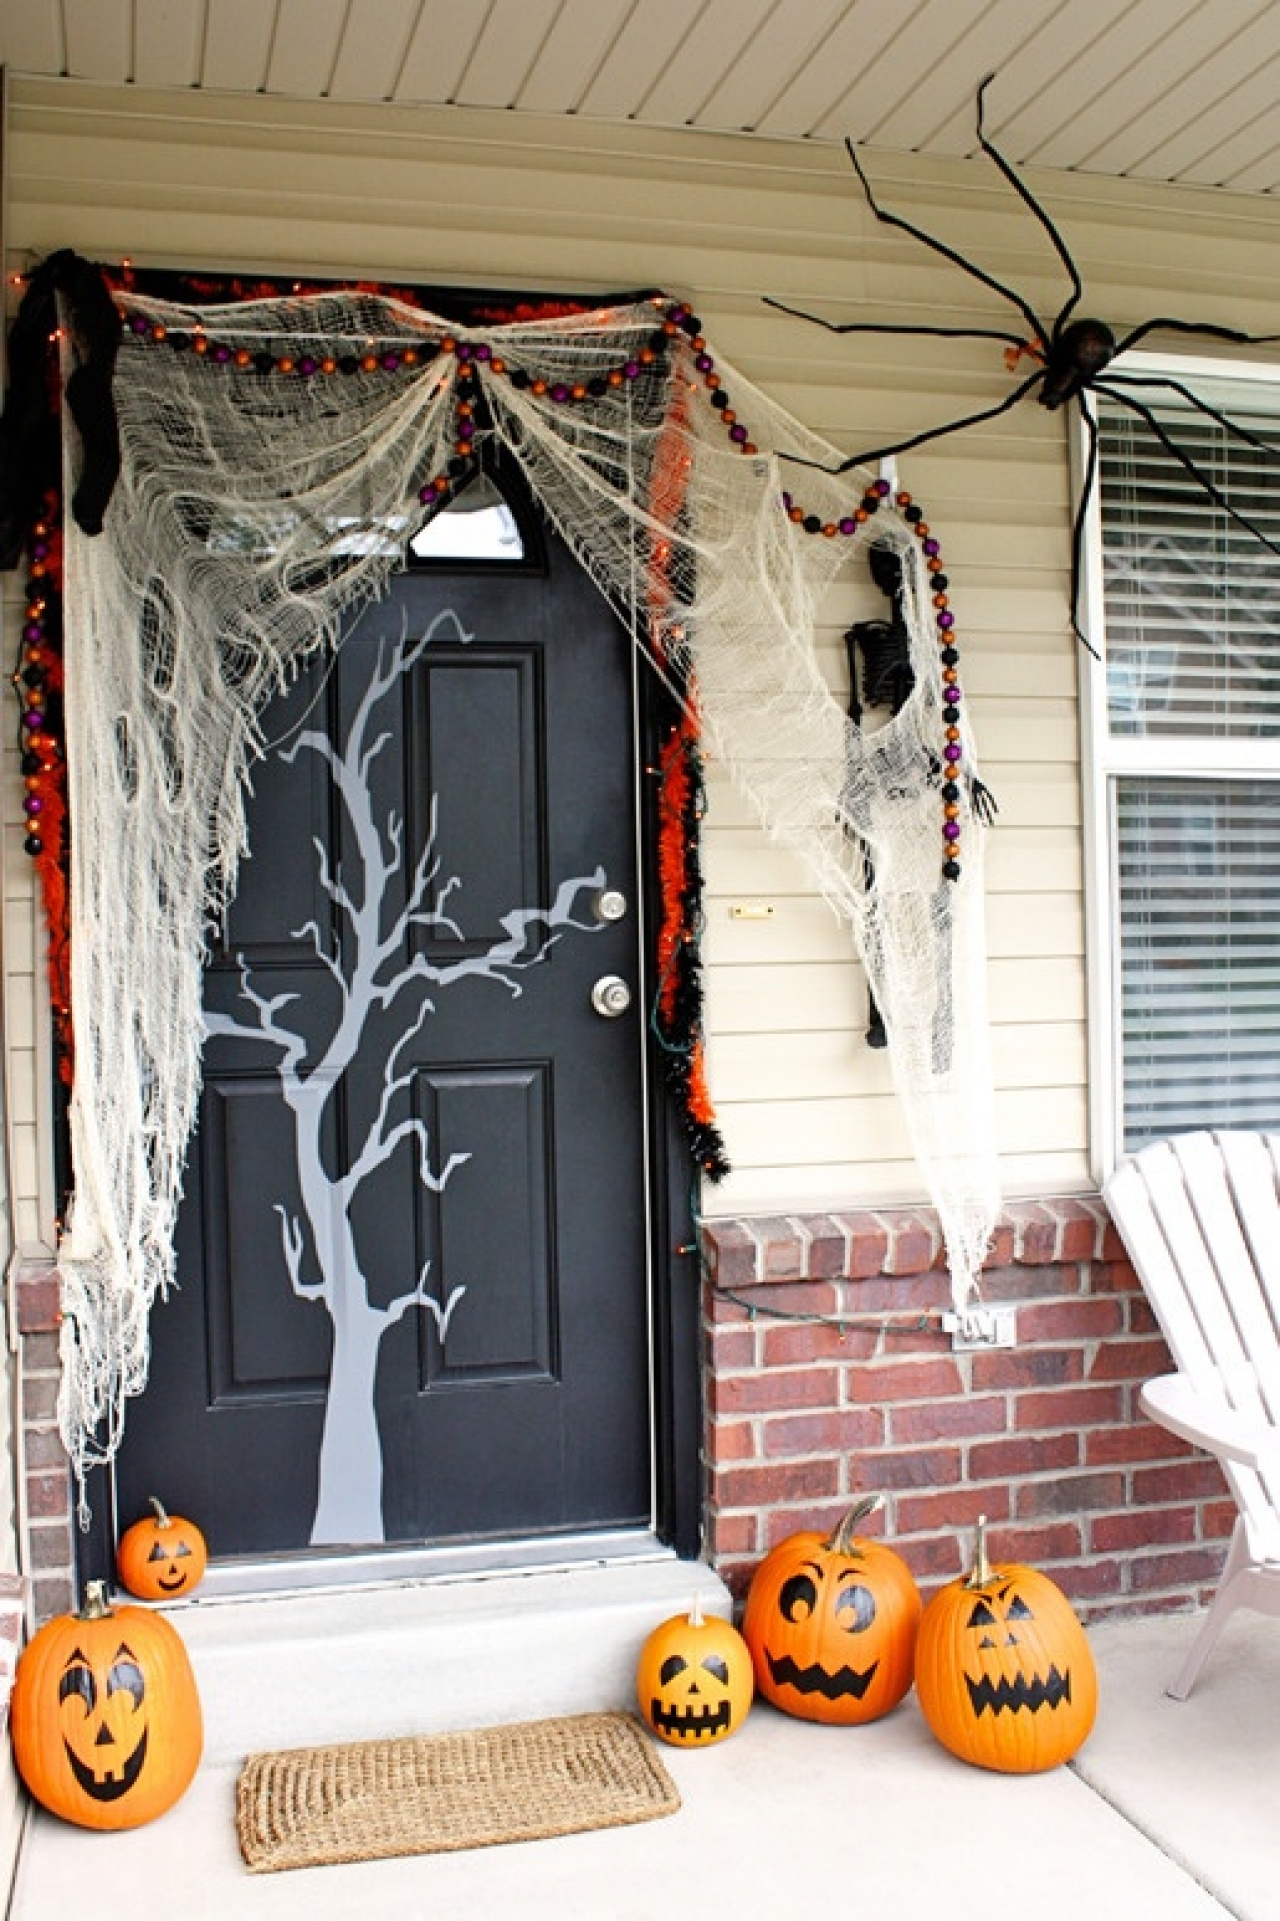 Halloween front porch decorations - Craftberrybush Com Small Porch Decorating Cute Halloween Front